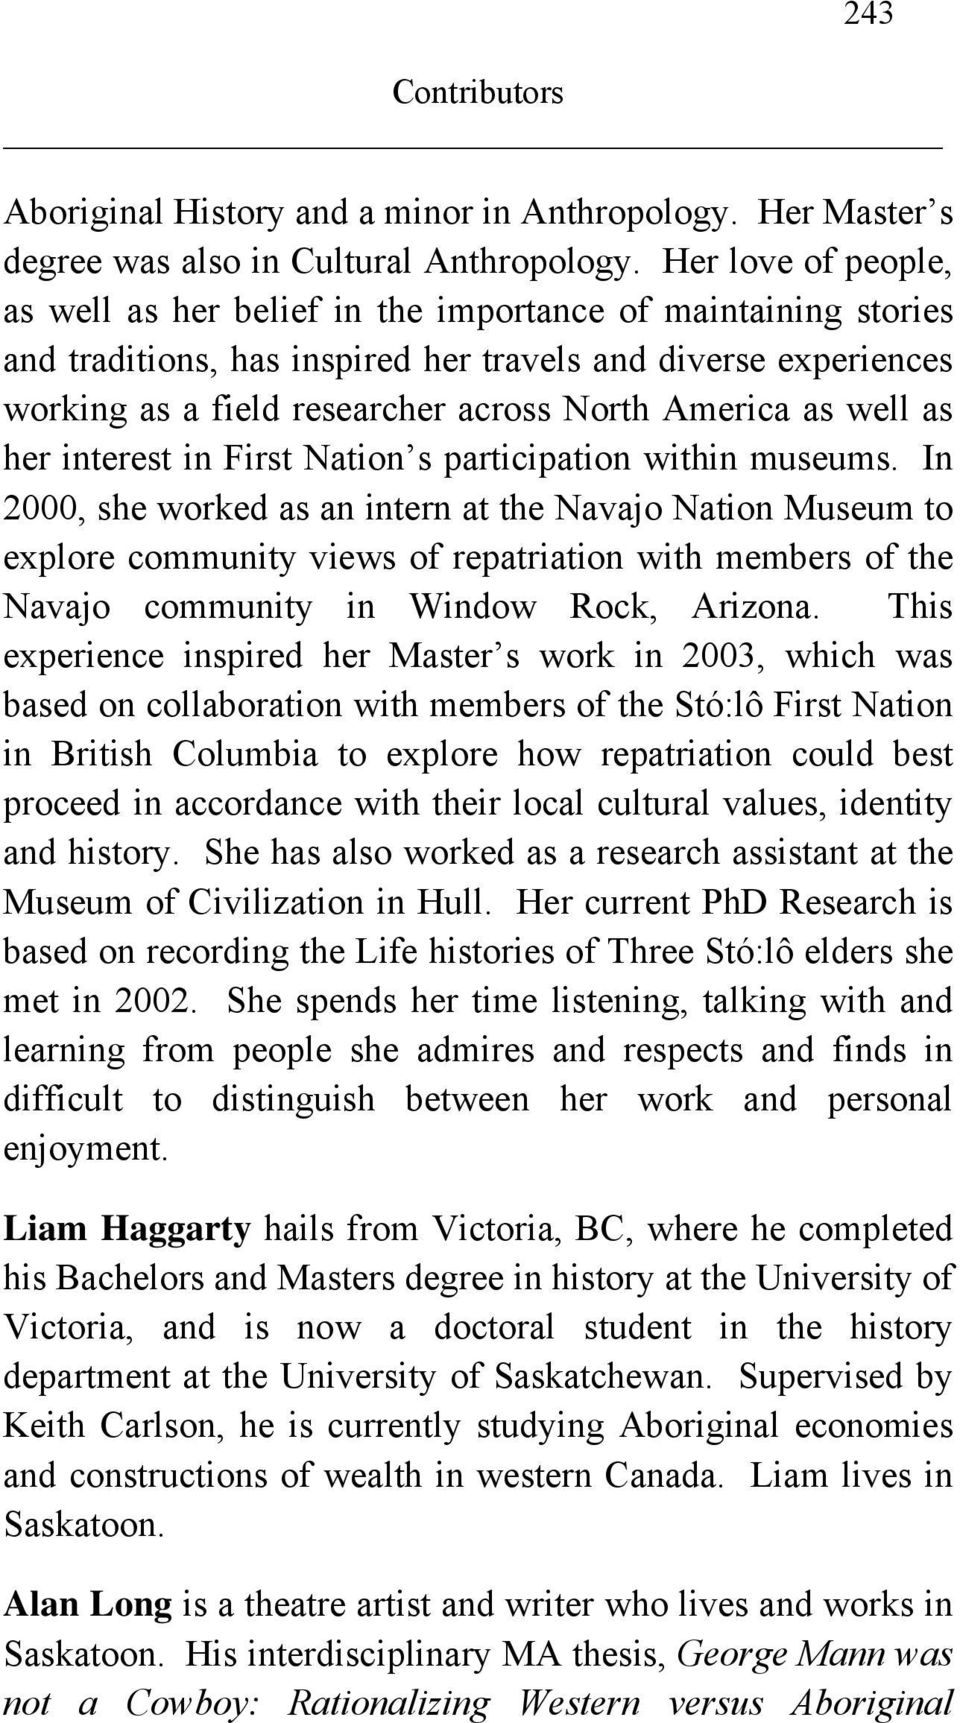 as well as her interest in First Nation s participation within museums.